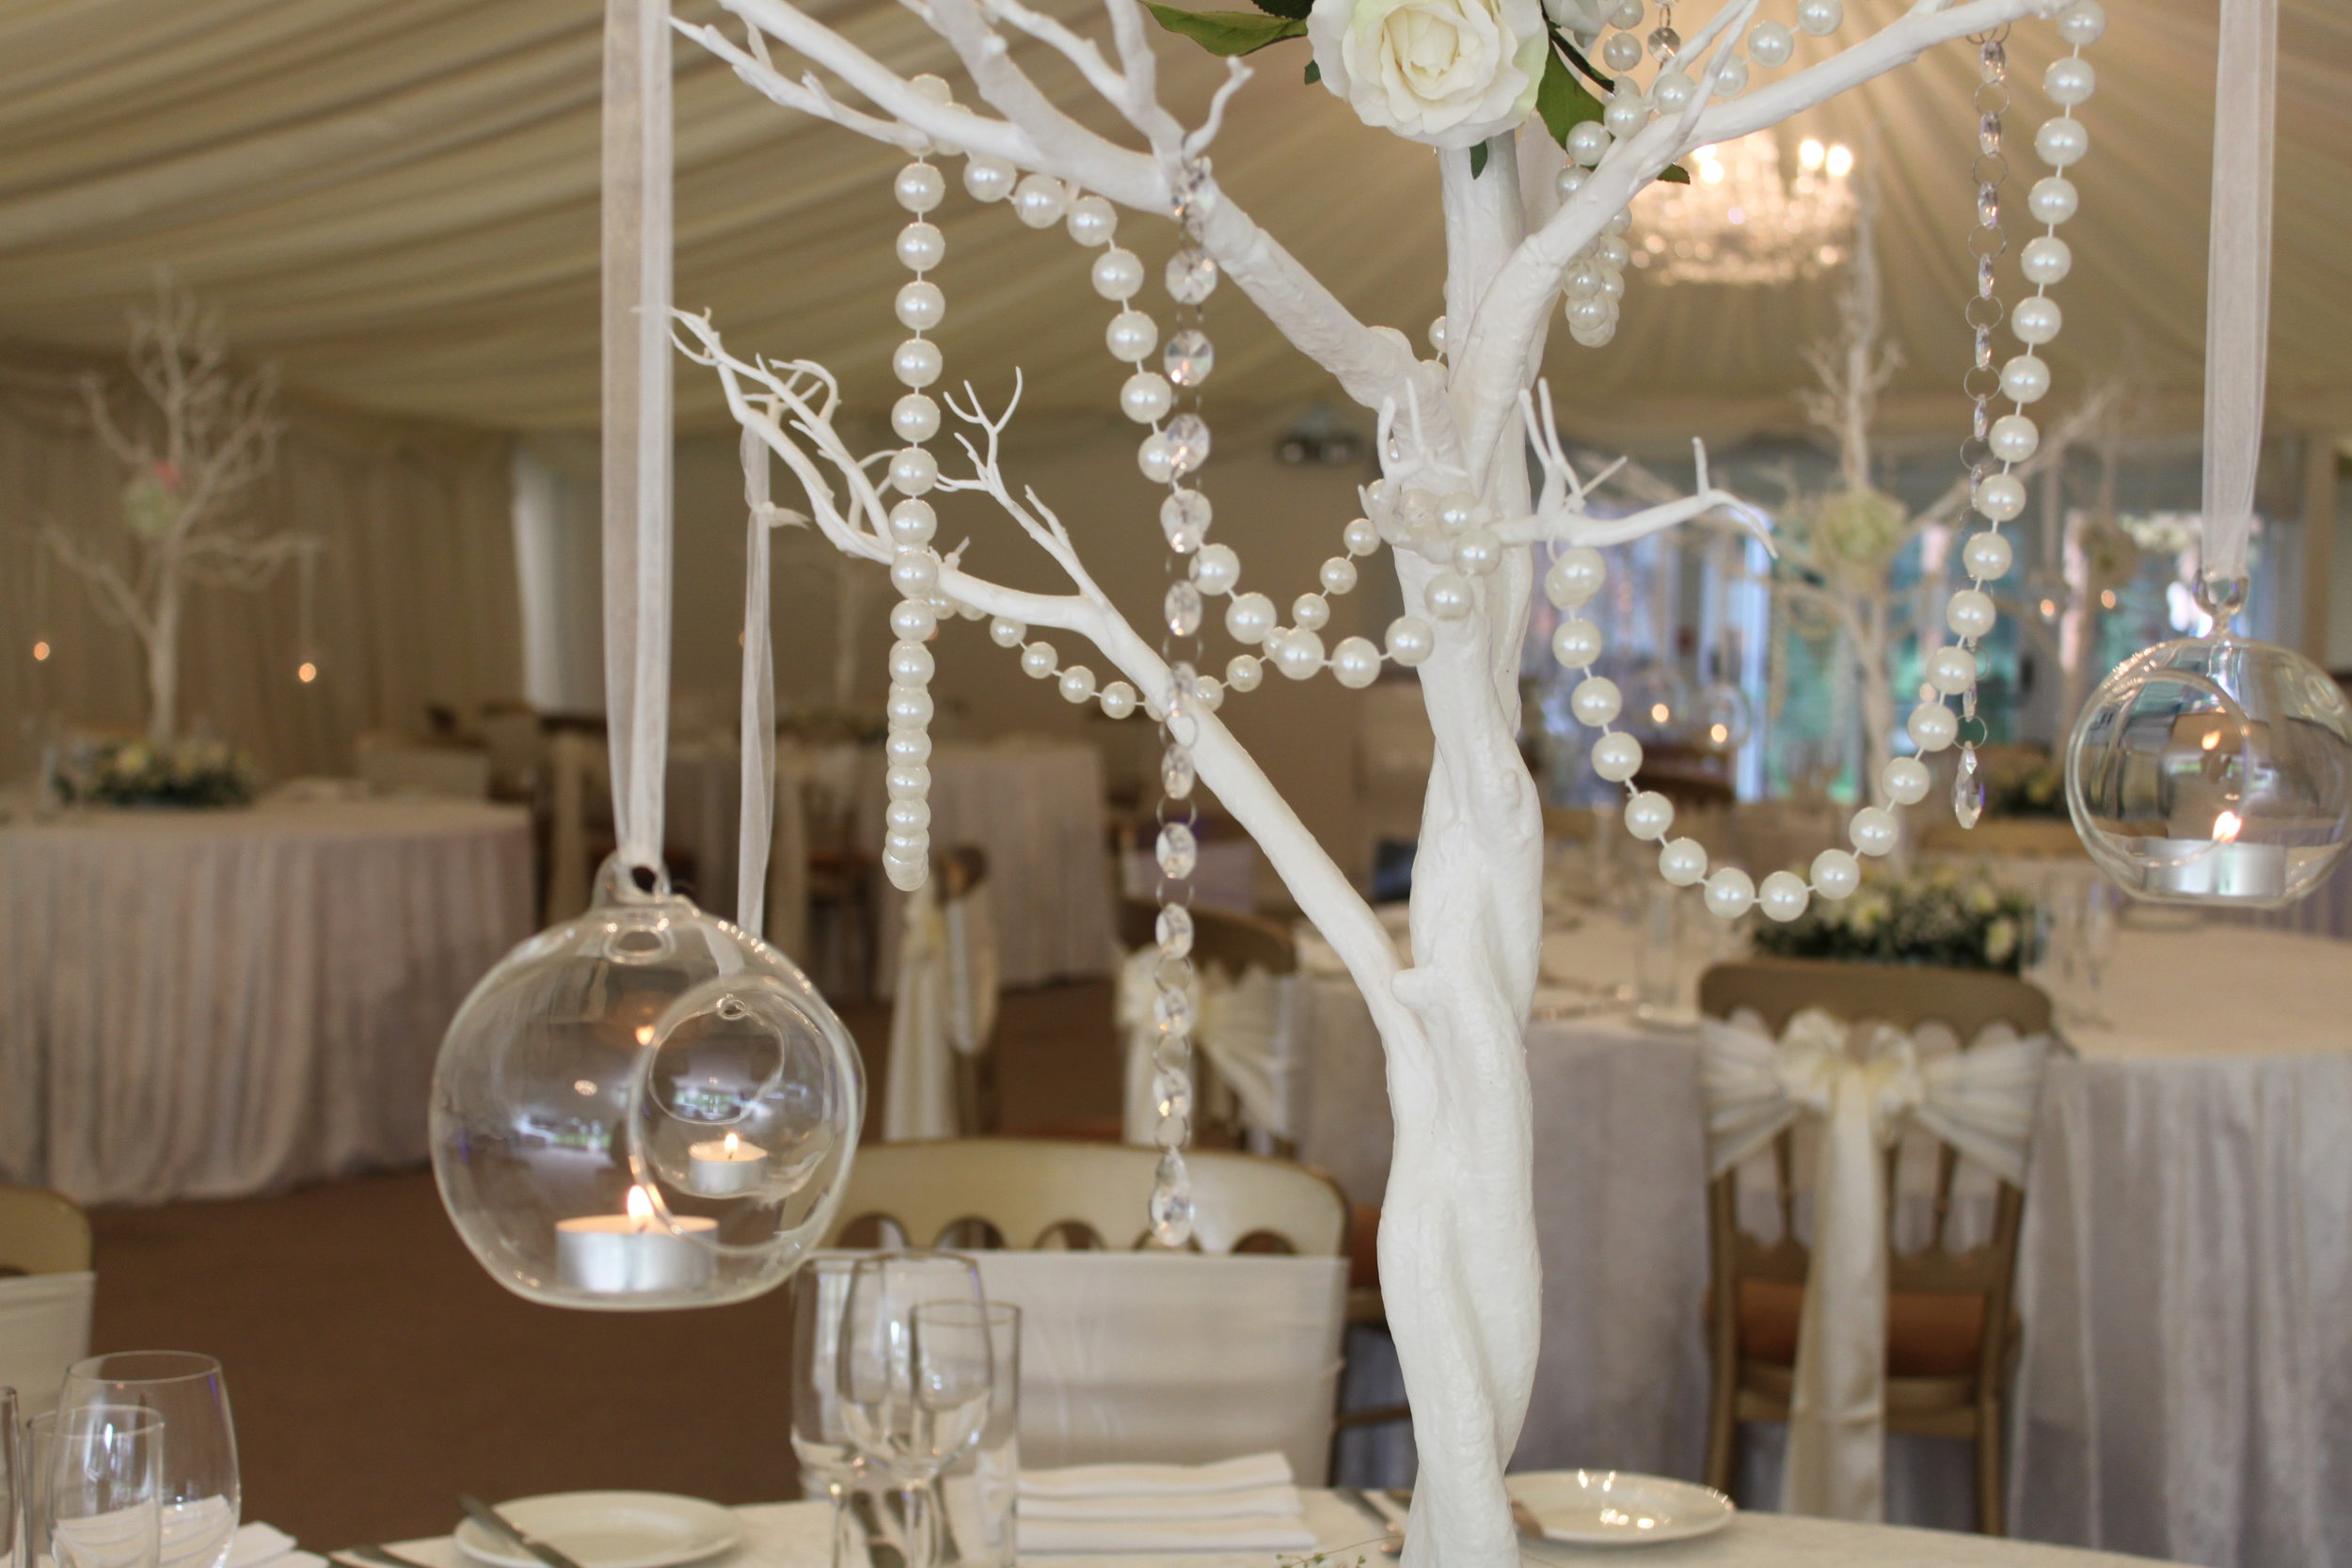 Manzanita - Our 1 metre tall white manzanita trees can be decorated to your preferred style using hanging lanterns, pearls and crystals these centrepieces really enhance a venue. A popular choice for autumn and winter events.Hire from only £20 each or 10 for £150!